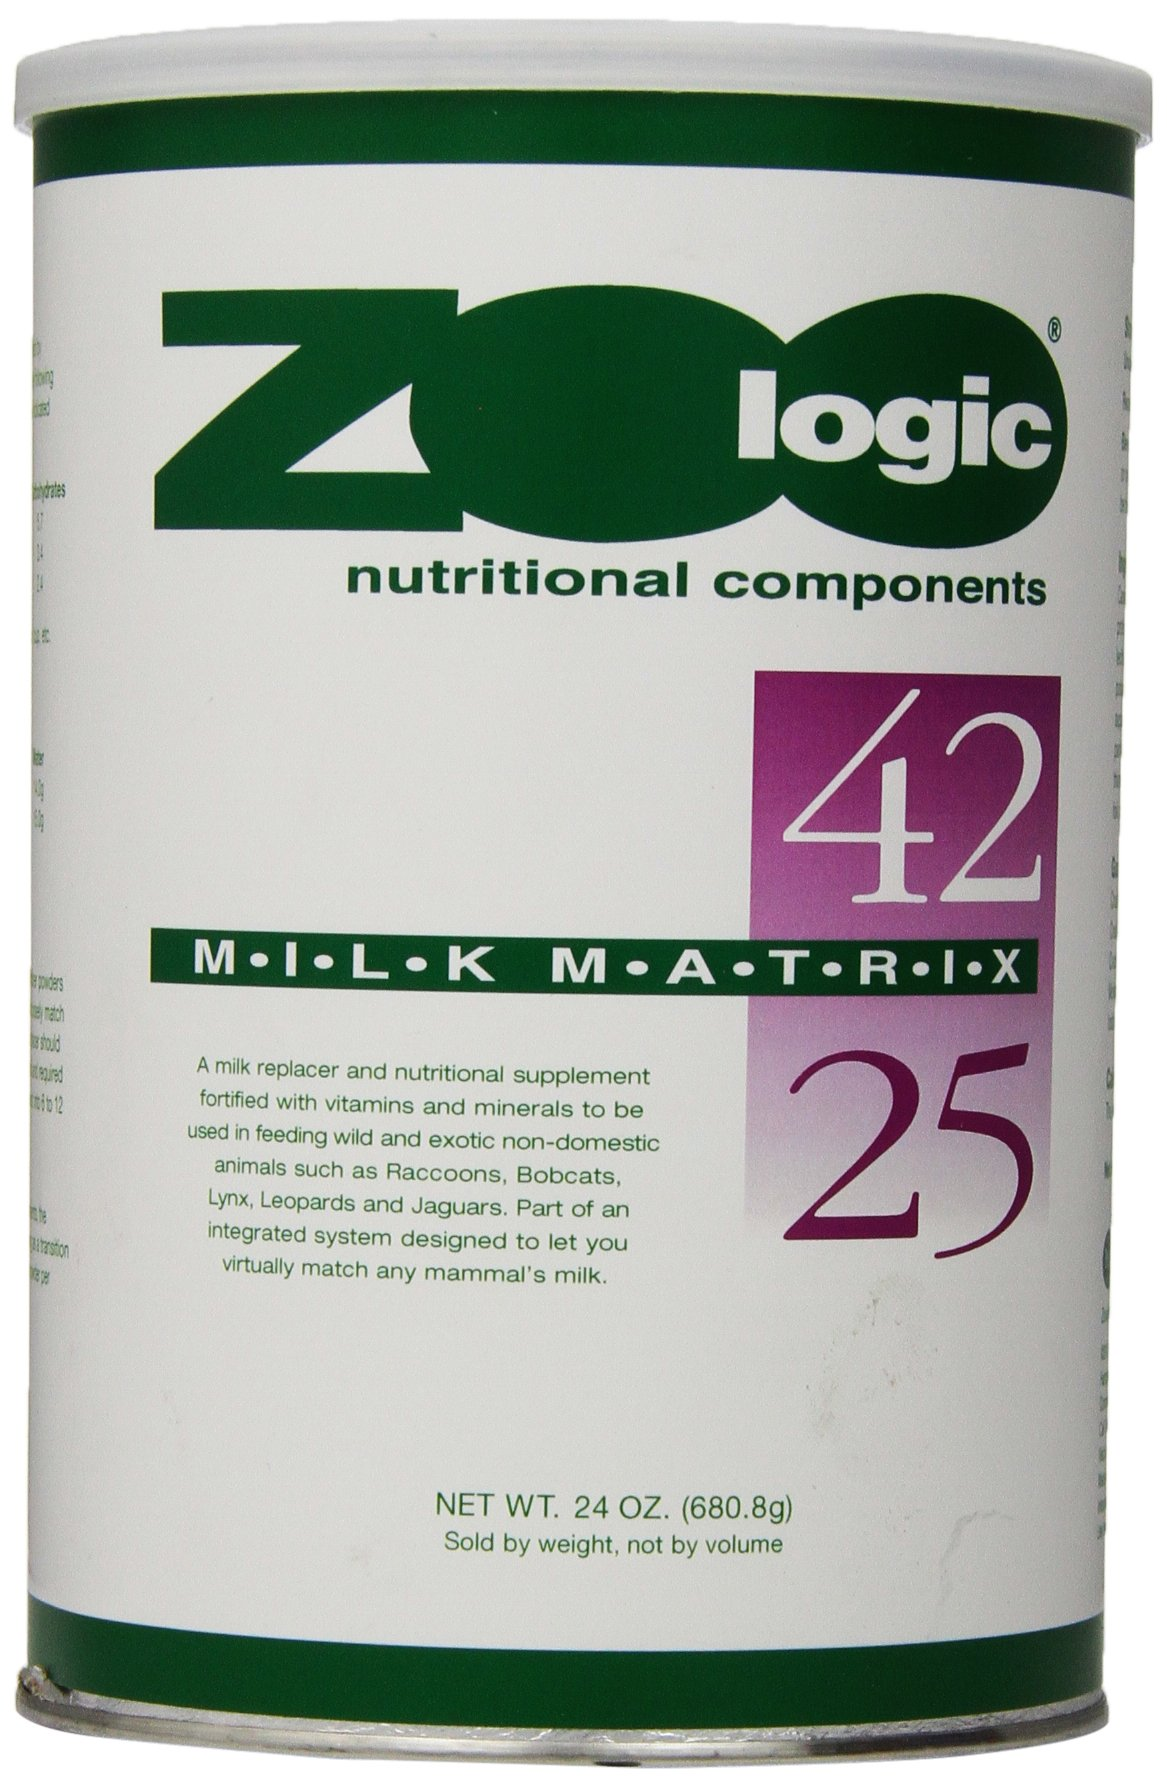 Pet Ag Milk Matrix 42/25, 24-Ounce